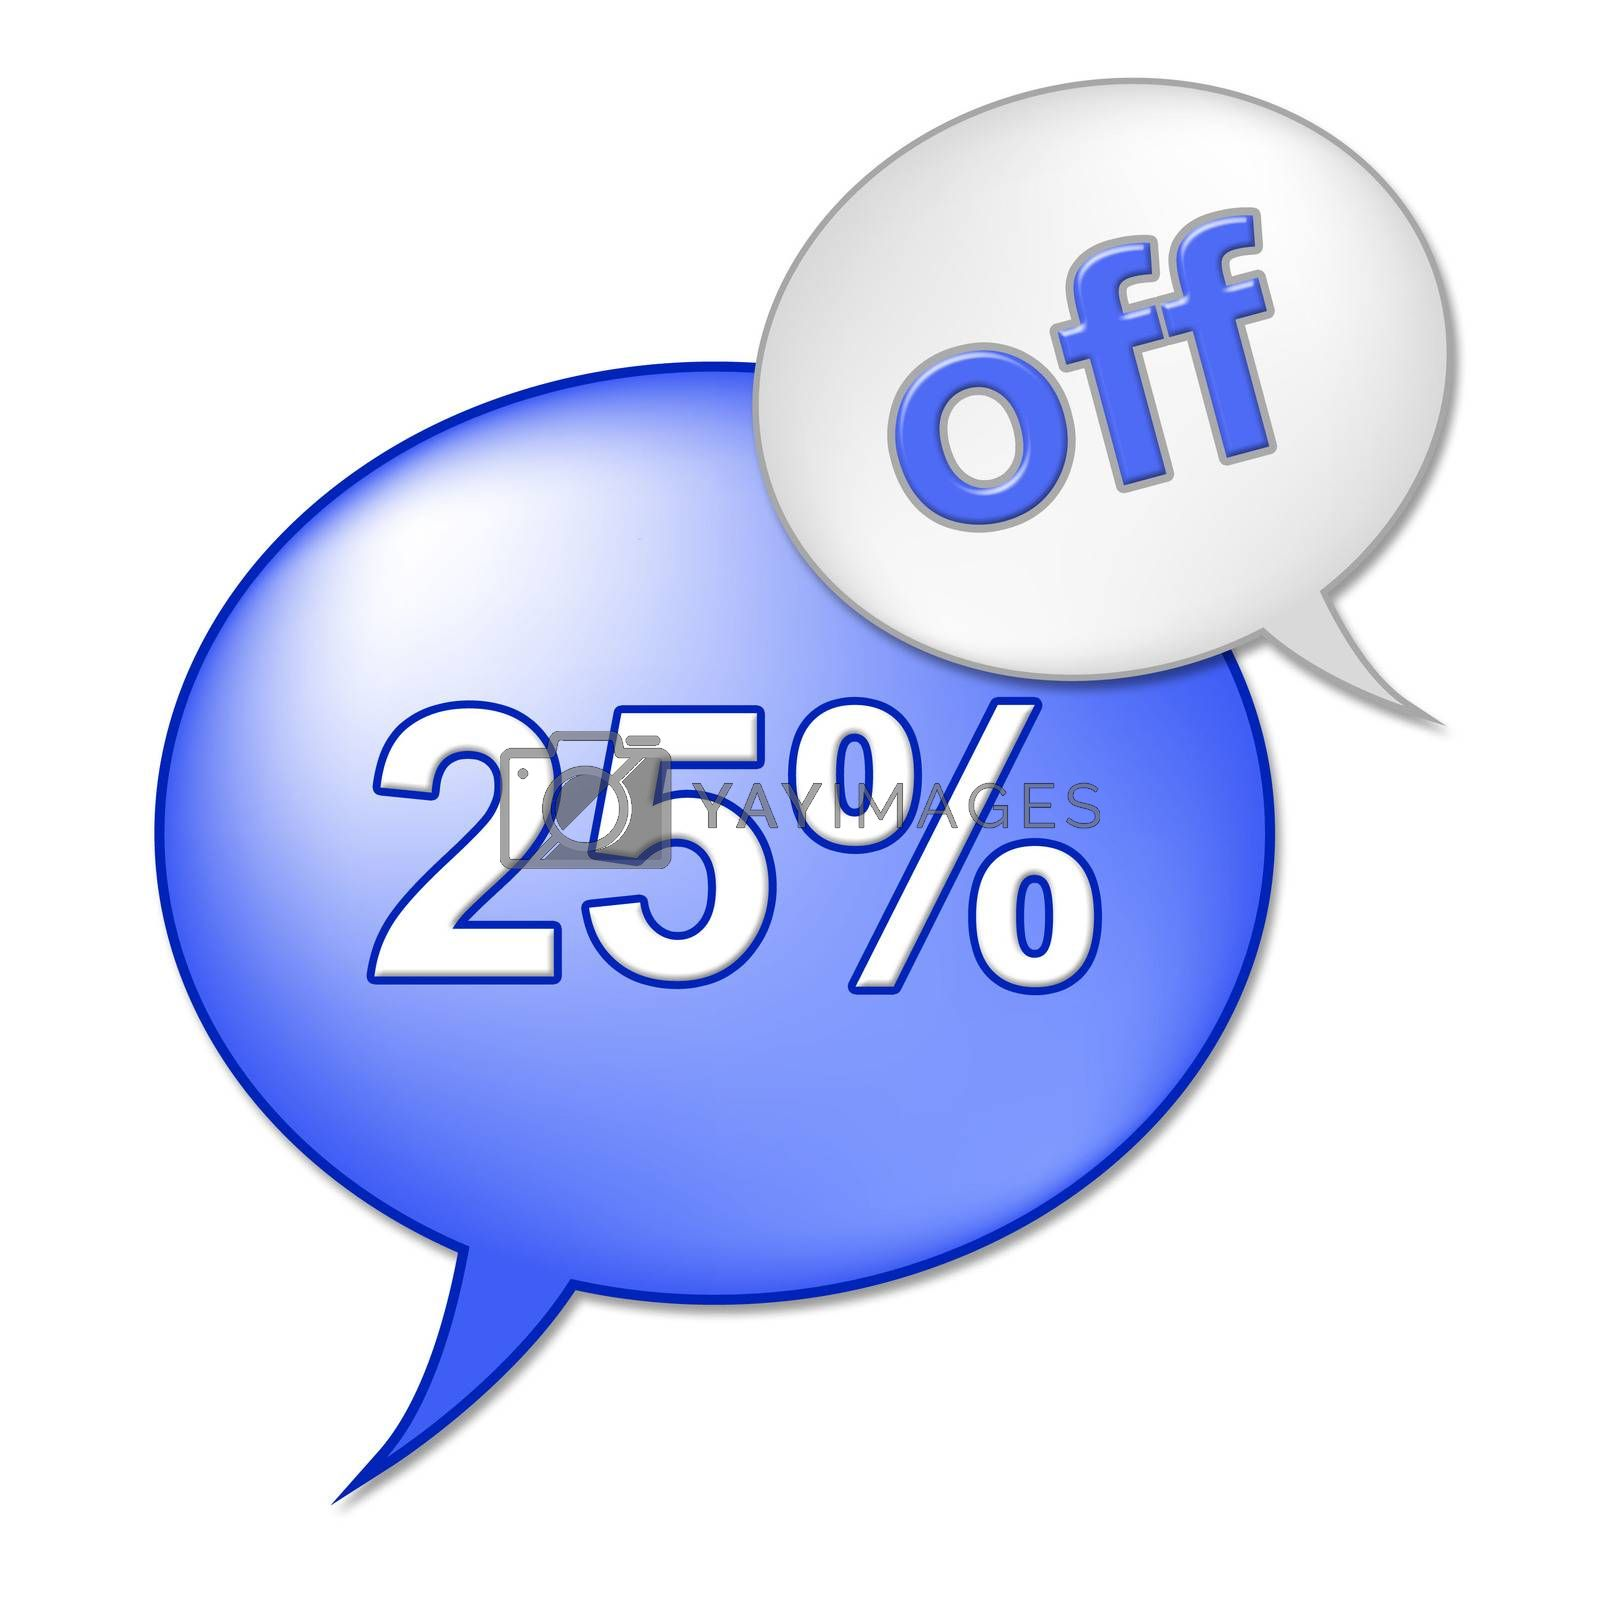 Twenty Five Percent Shows Discounts Reduction And Savings by stuartmiles